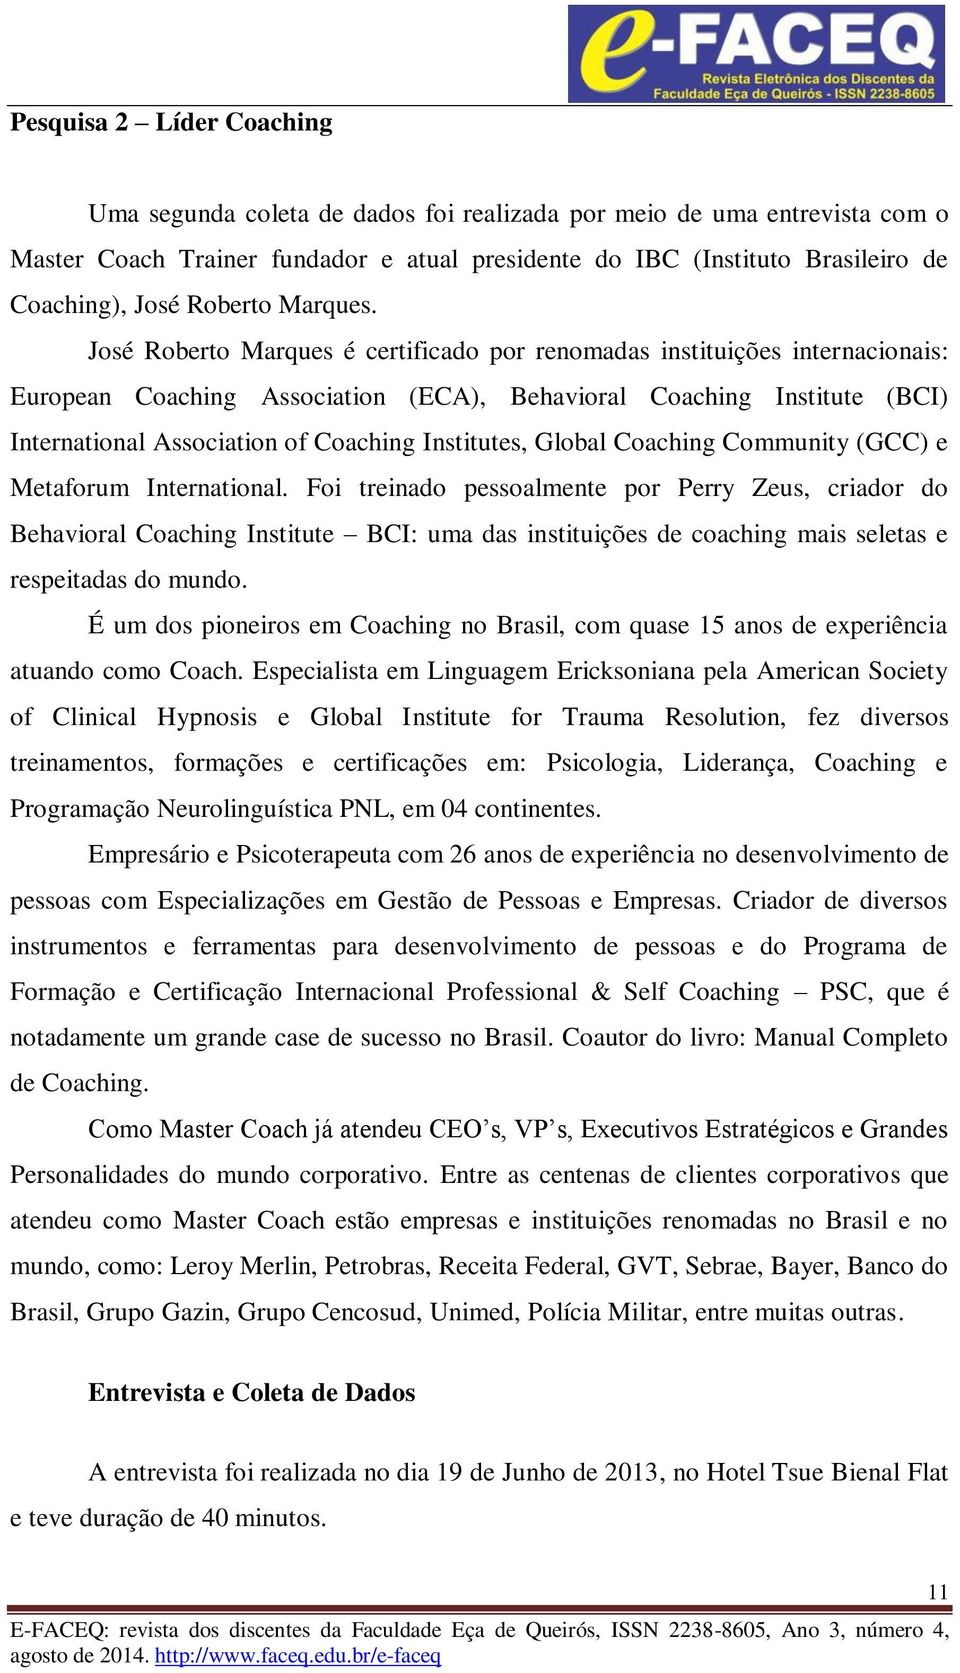 José Roberto Marques é certificado por renomadas instituições internacionais: European Coaching Association (ECA), Behavioral Coaching Institute (BCI) International Association of Coaching